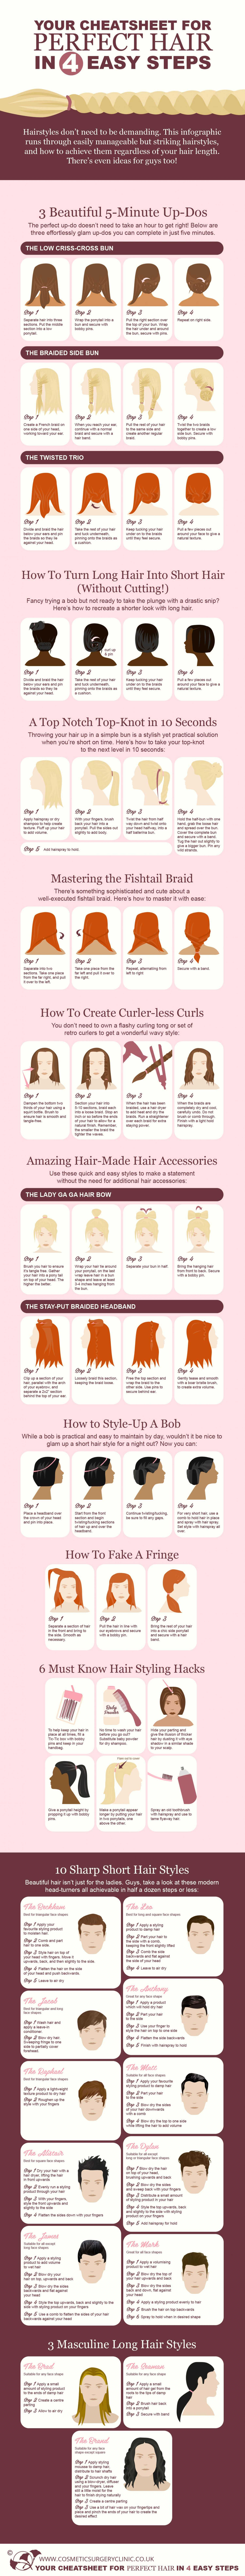 Your Cheatsheet For Perfect Hair In 4 Easy Steps